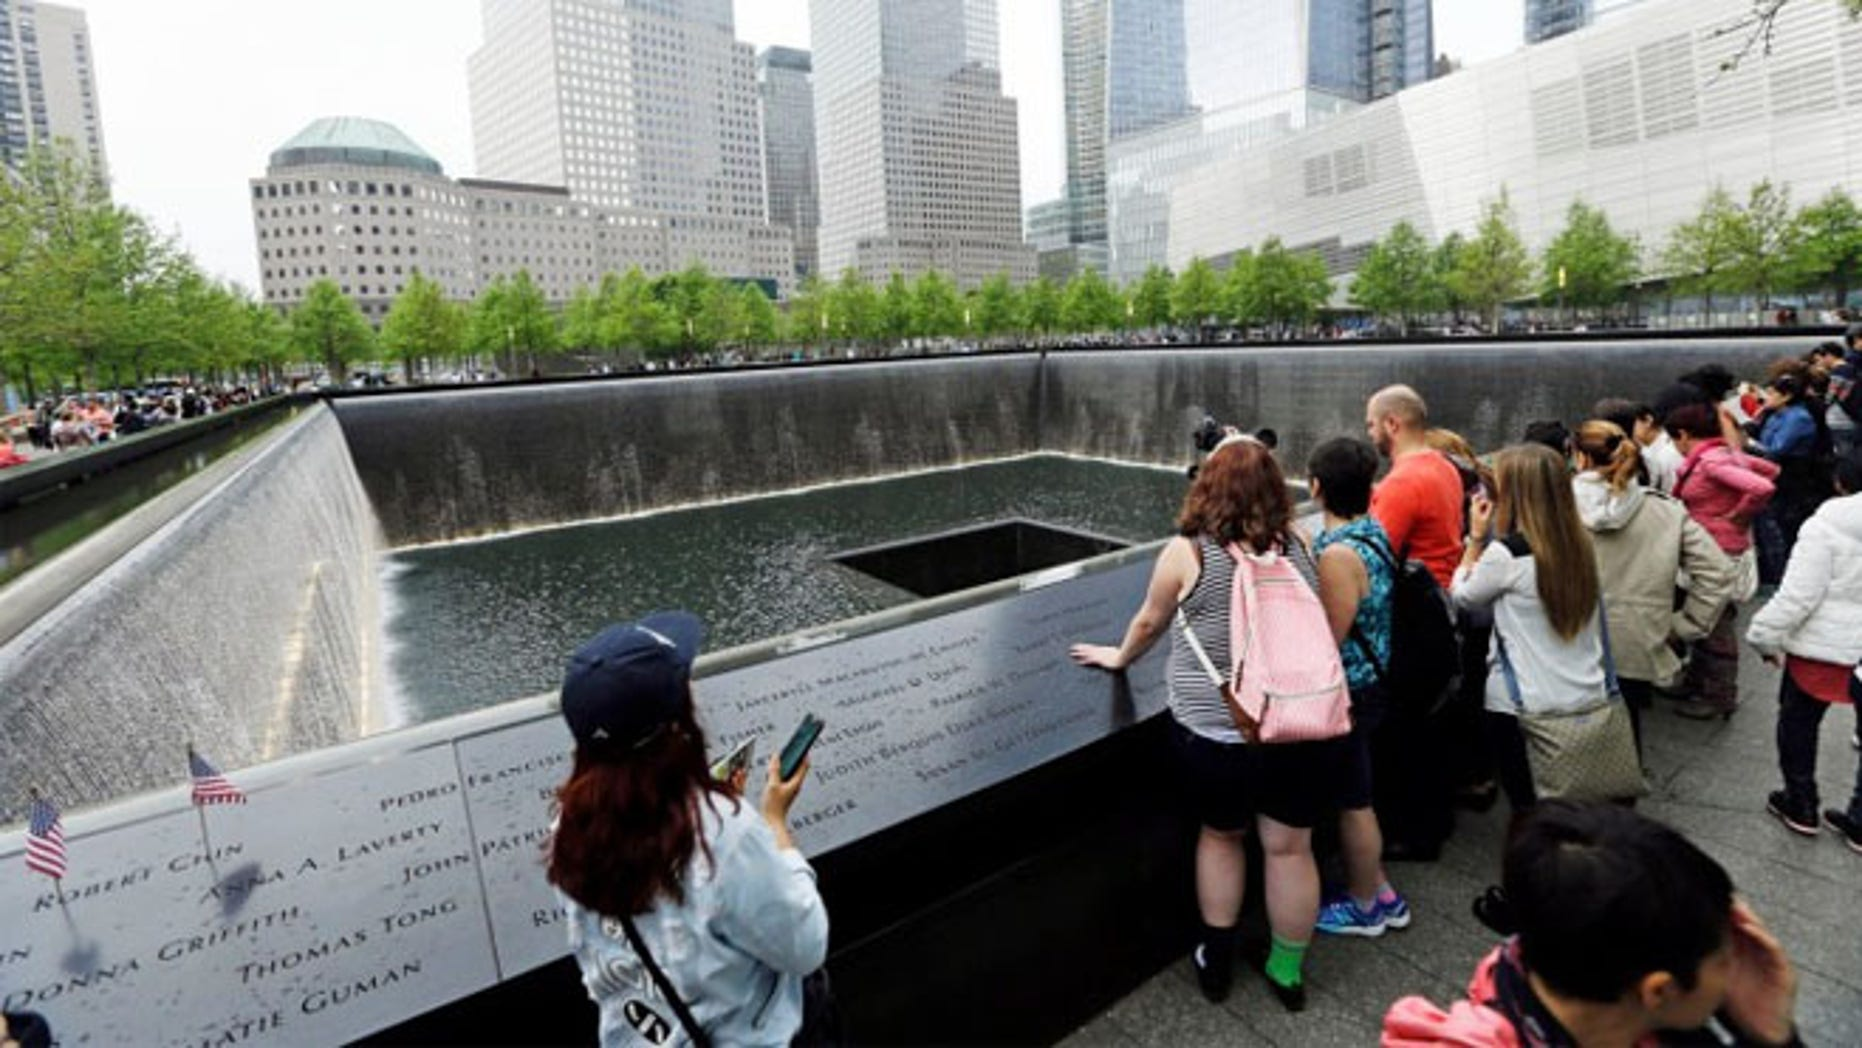 Elizabeth Anne Enderli said she had no idea her Texas concealed-carry permit was null in New York when she visited the memorial.